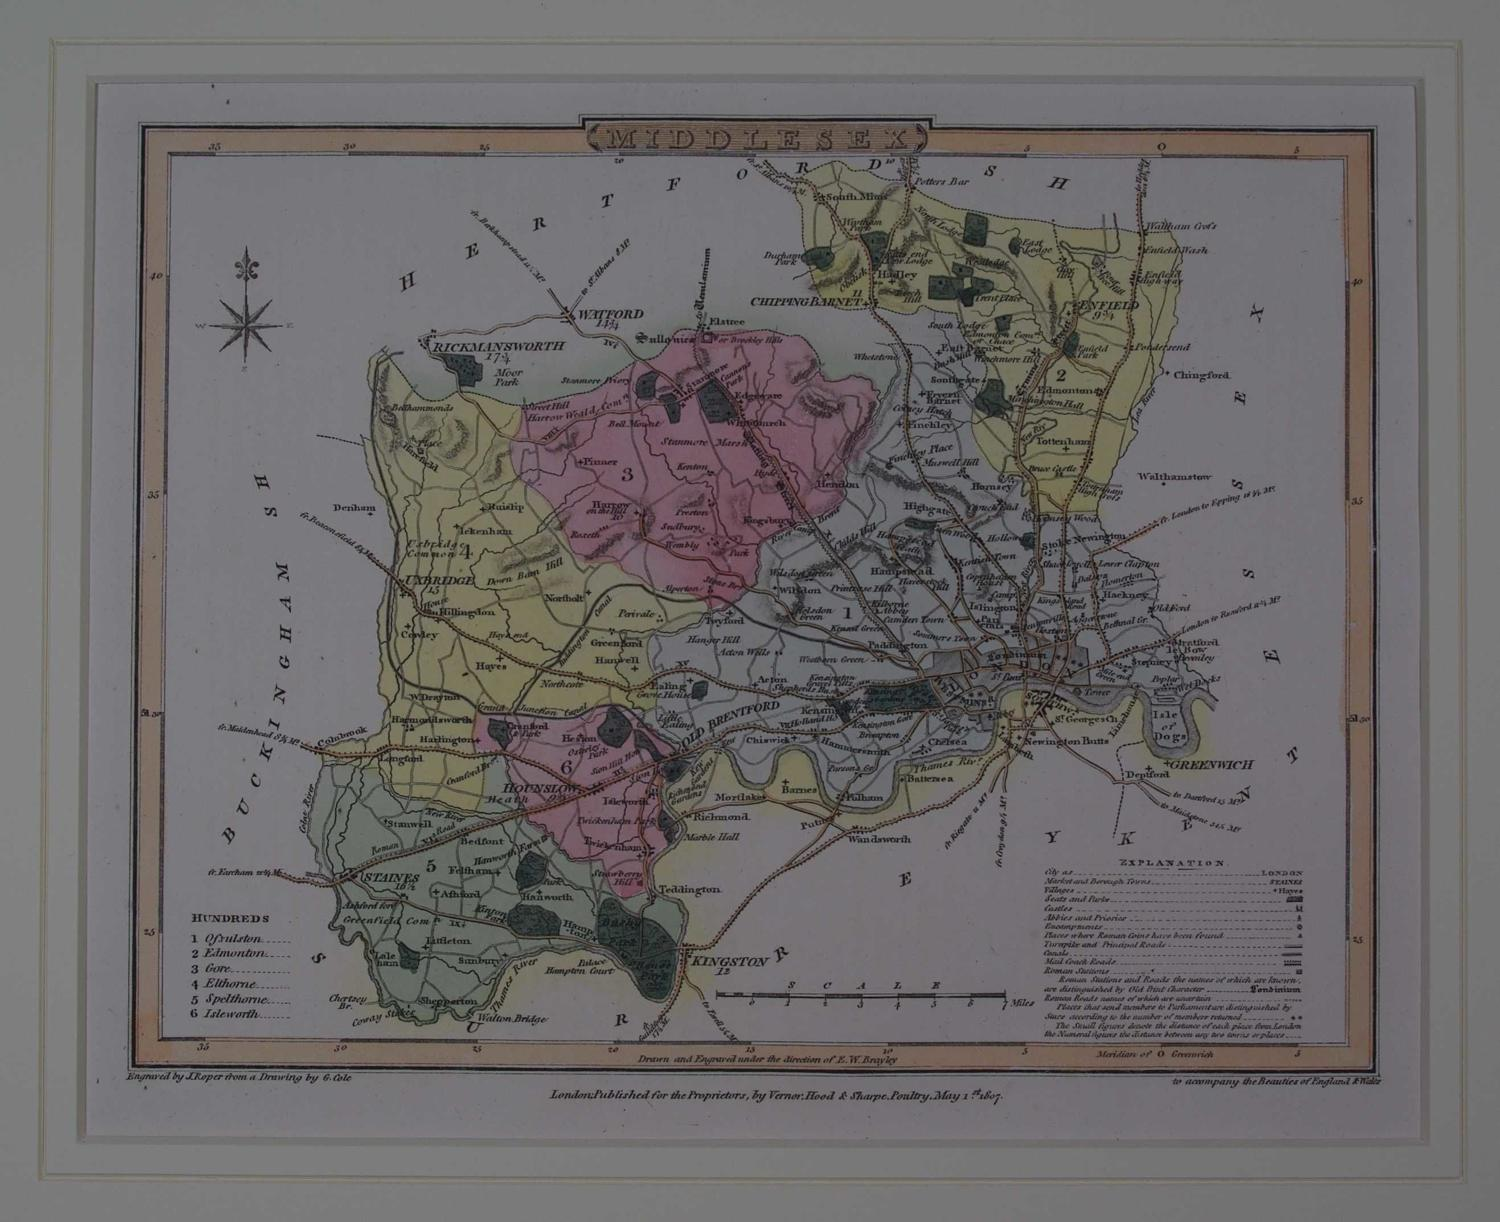 Middlesex by G Cole / J Roper / Joseph Nightingale